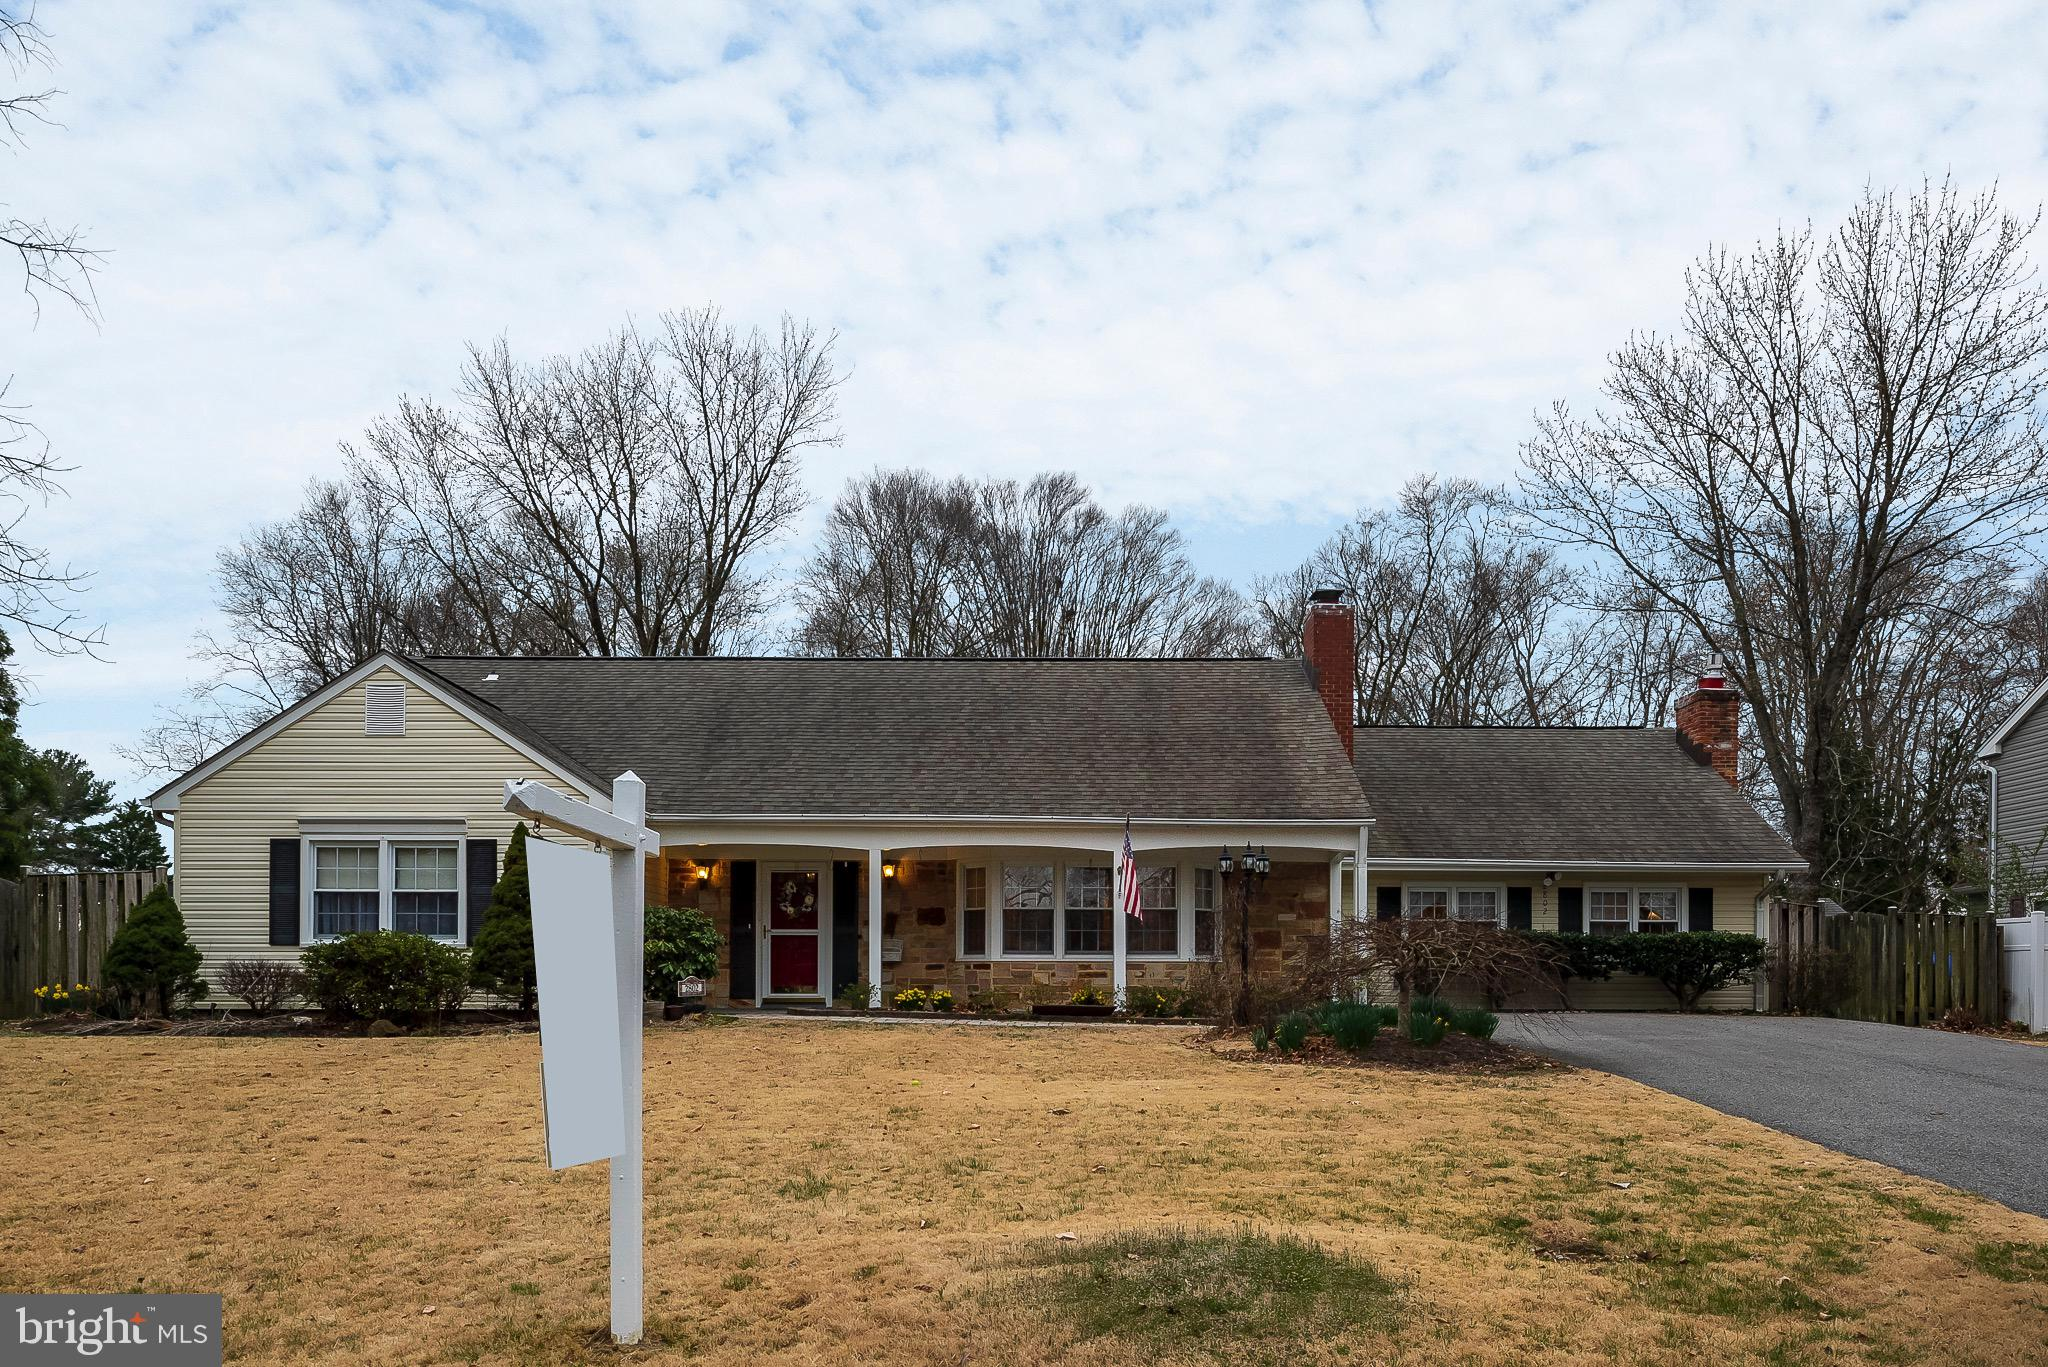 2802 SUDBERRY LANE, BOWIE, MD 20715